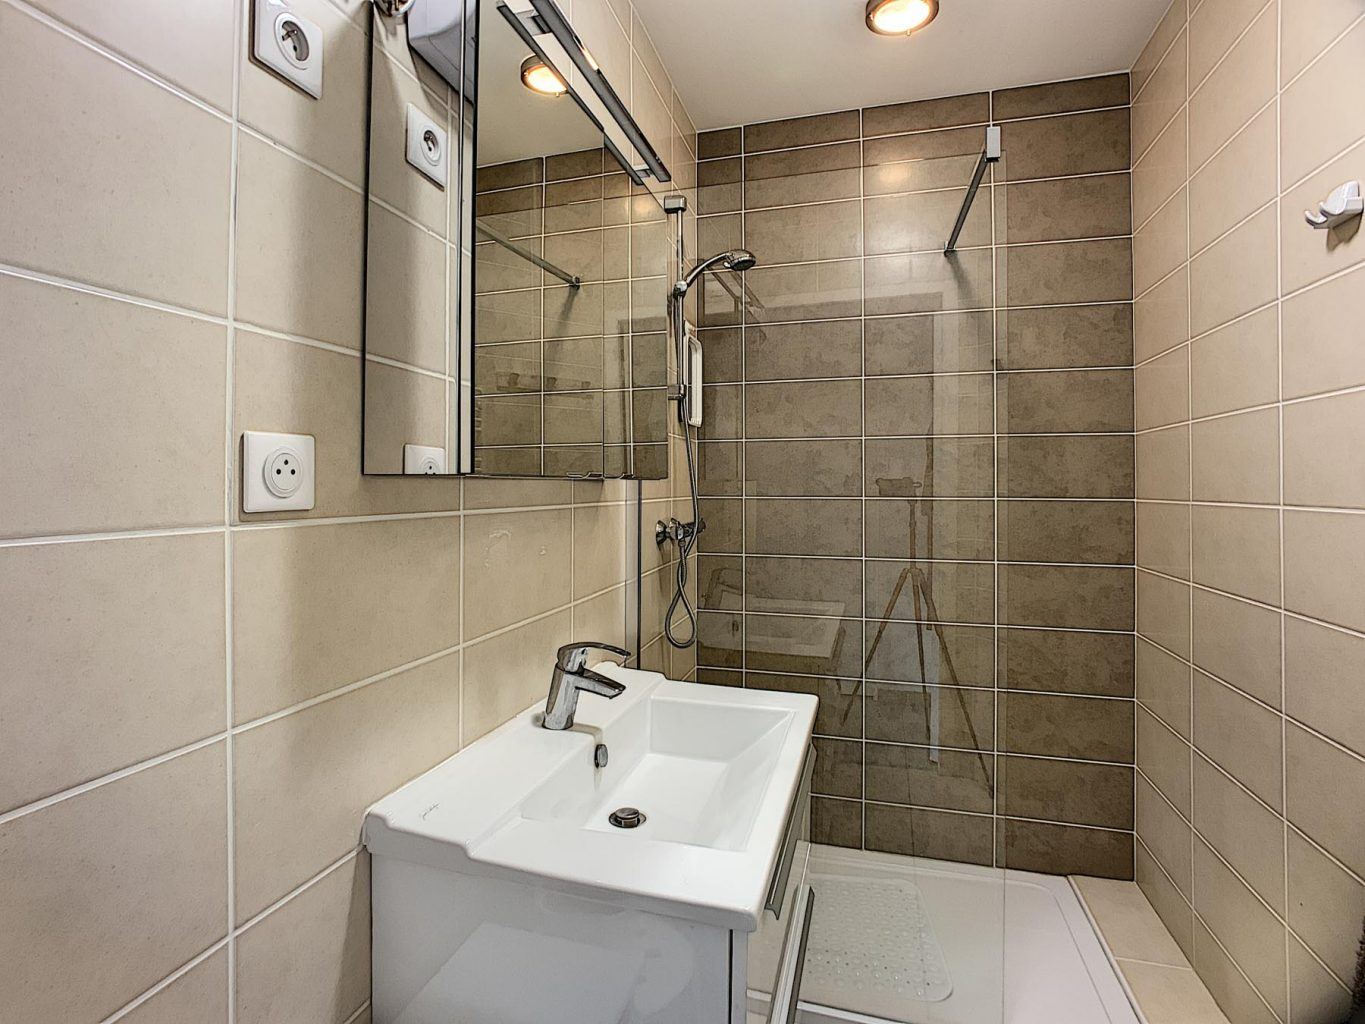 Morzine PDLP Appt 1050 Shower Room